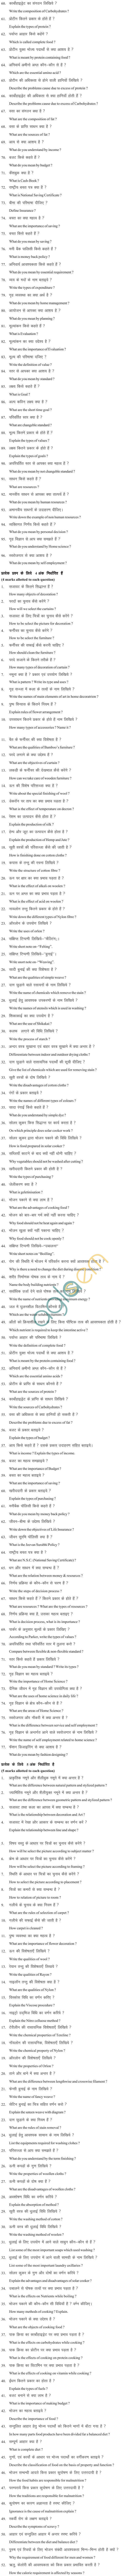 MP Board Class XI Question Bank - Home Management & Nutrition